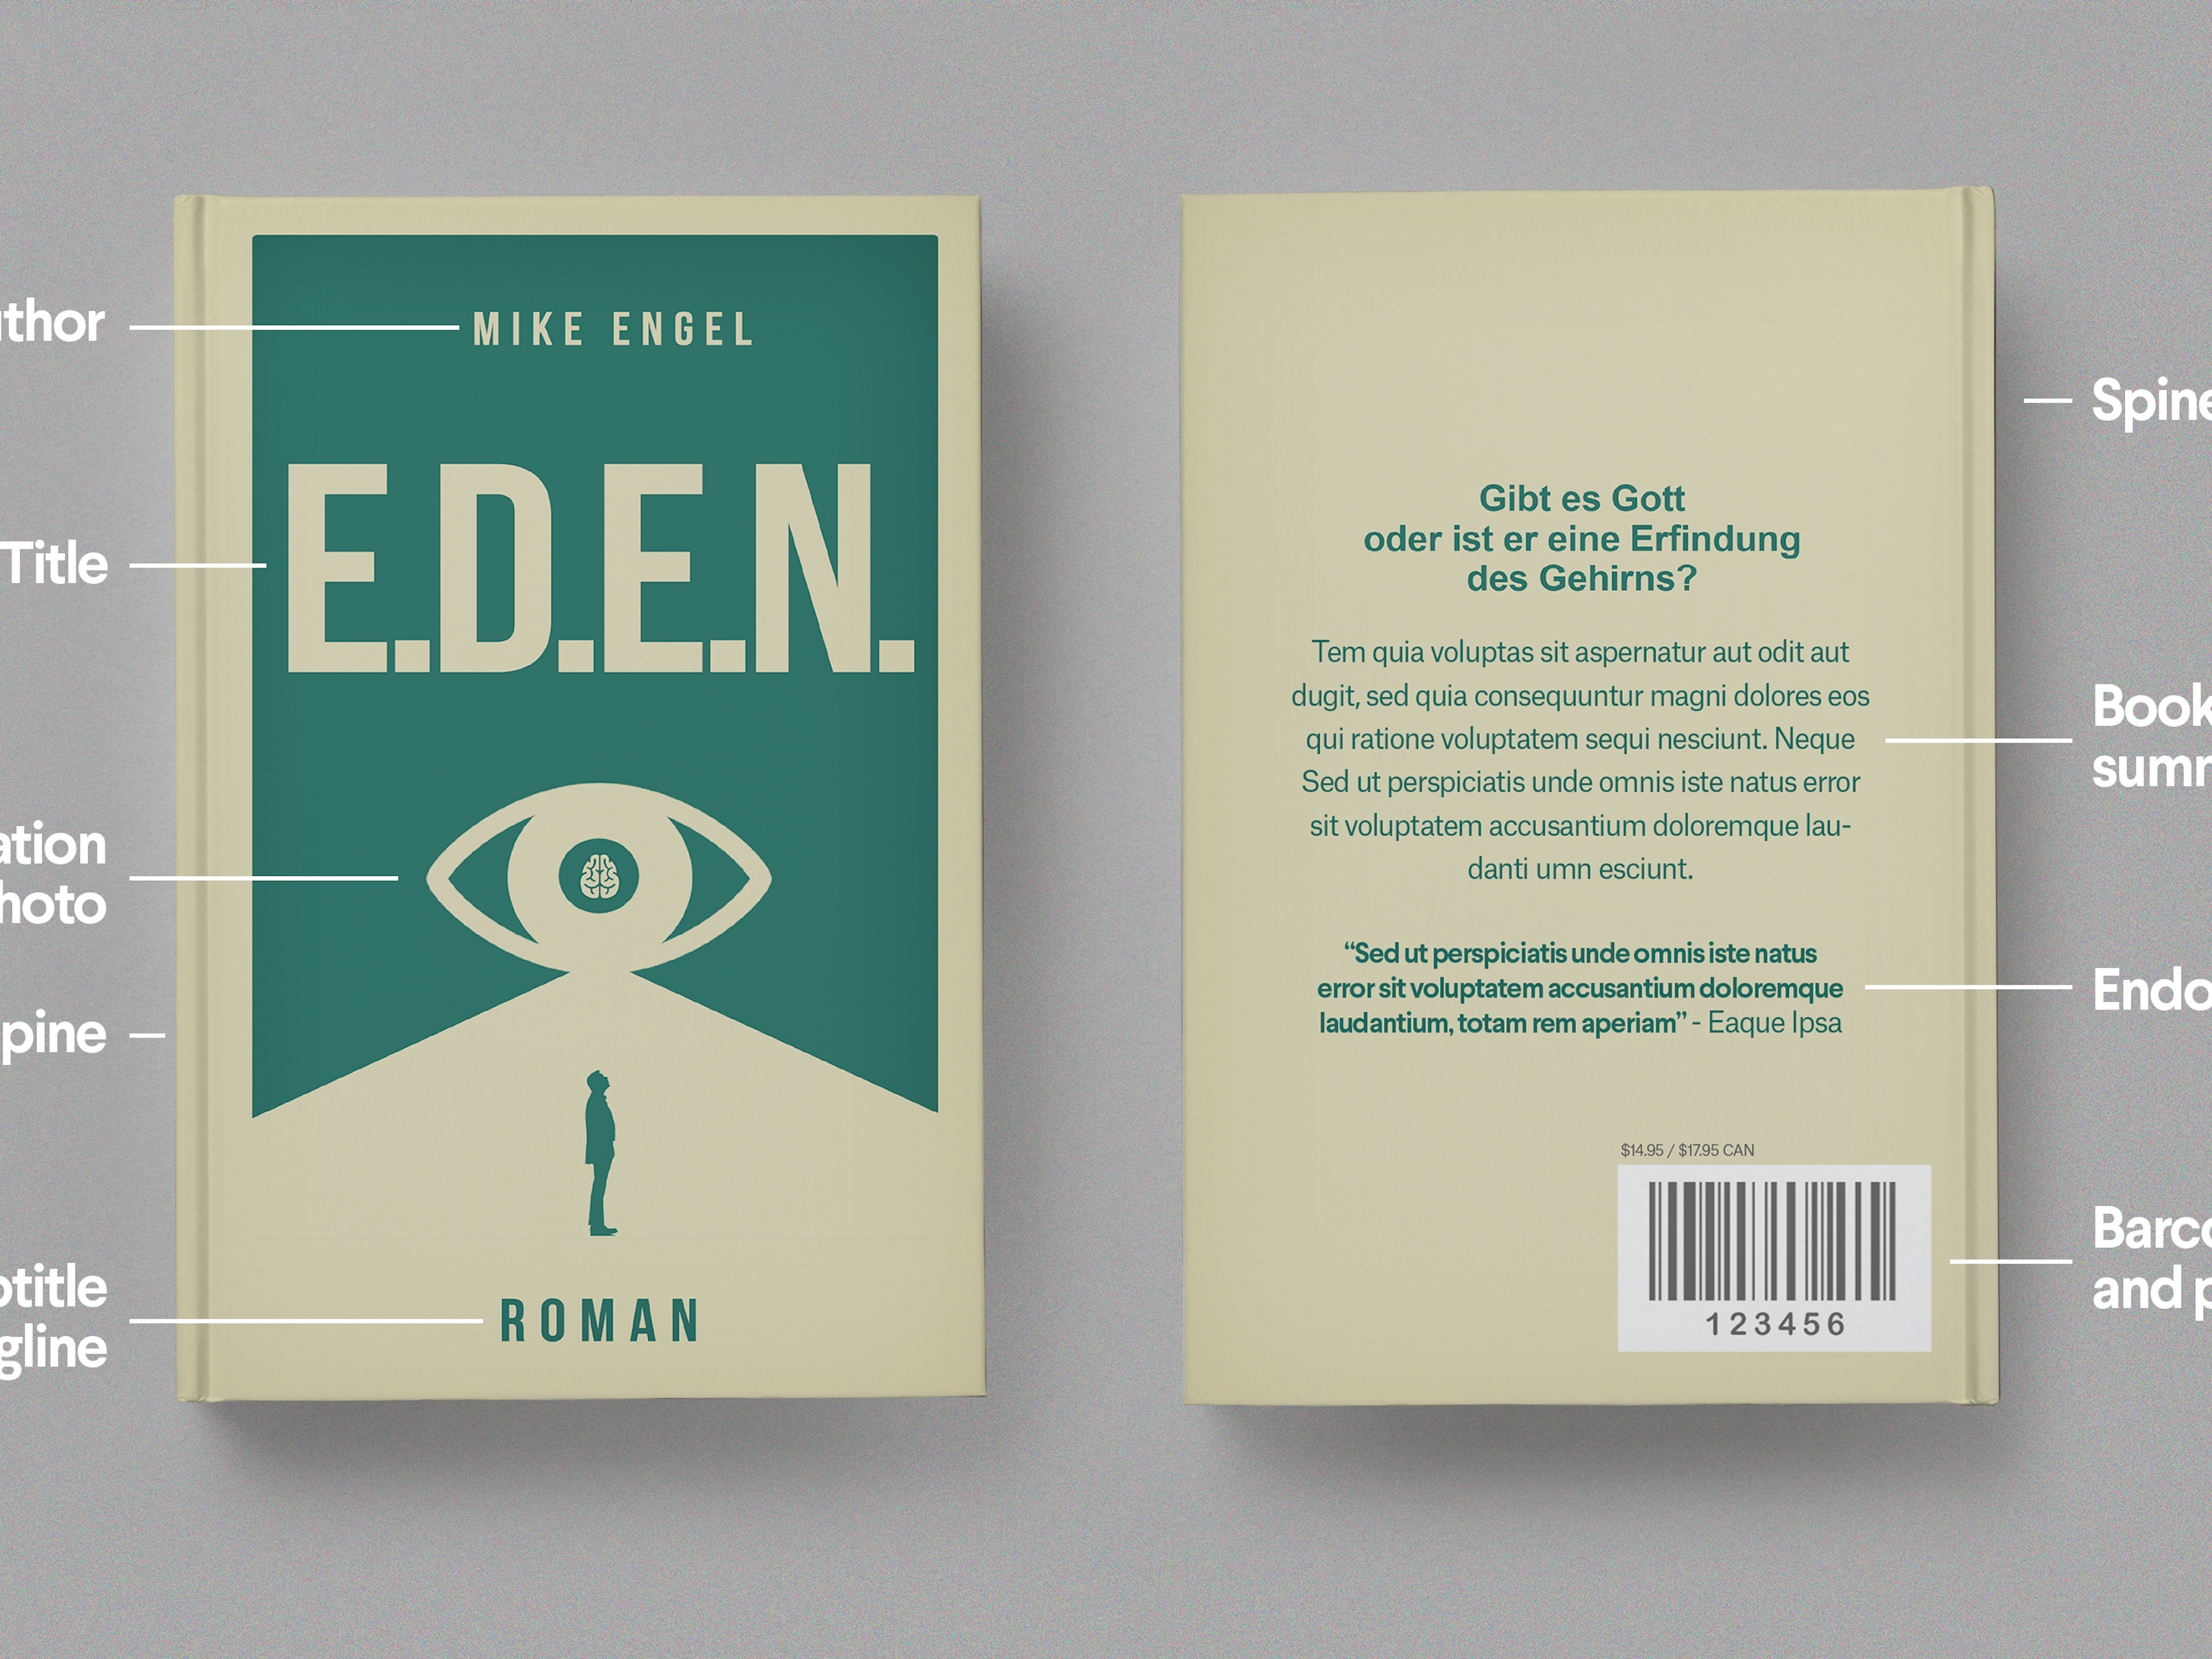 Anatomy of a book cover - 99designs